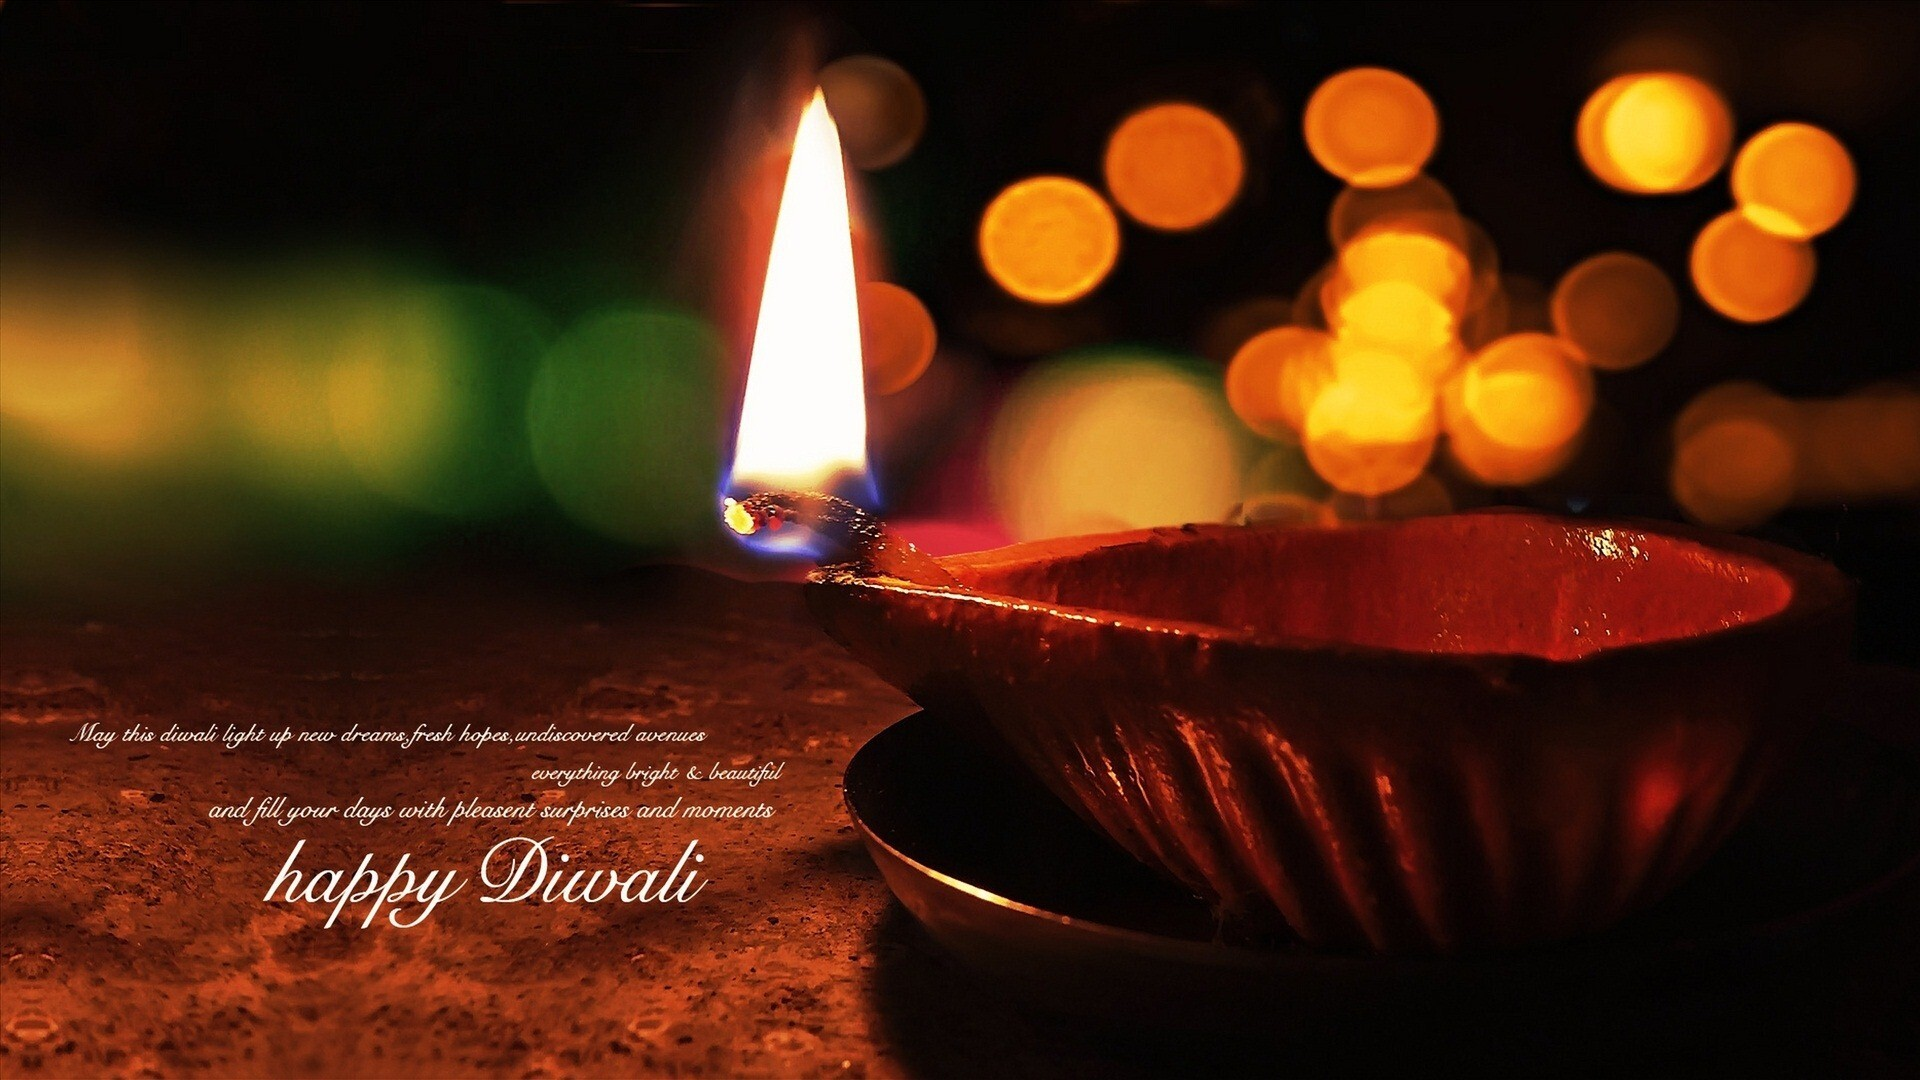 Happy Diwali Greeting Hd Wallpapers